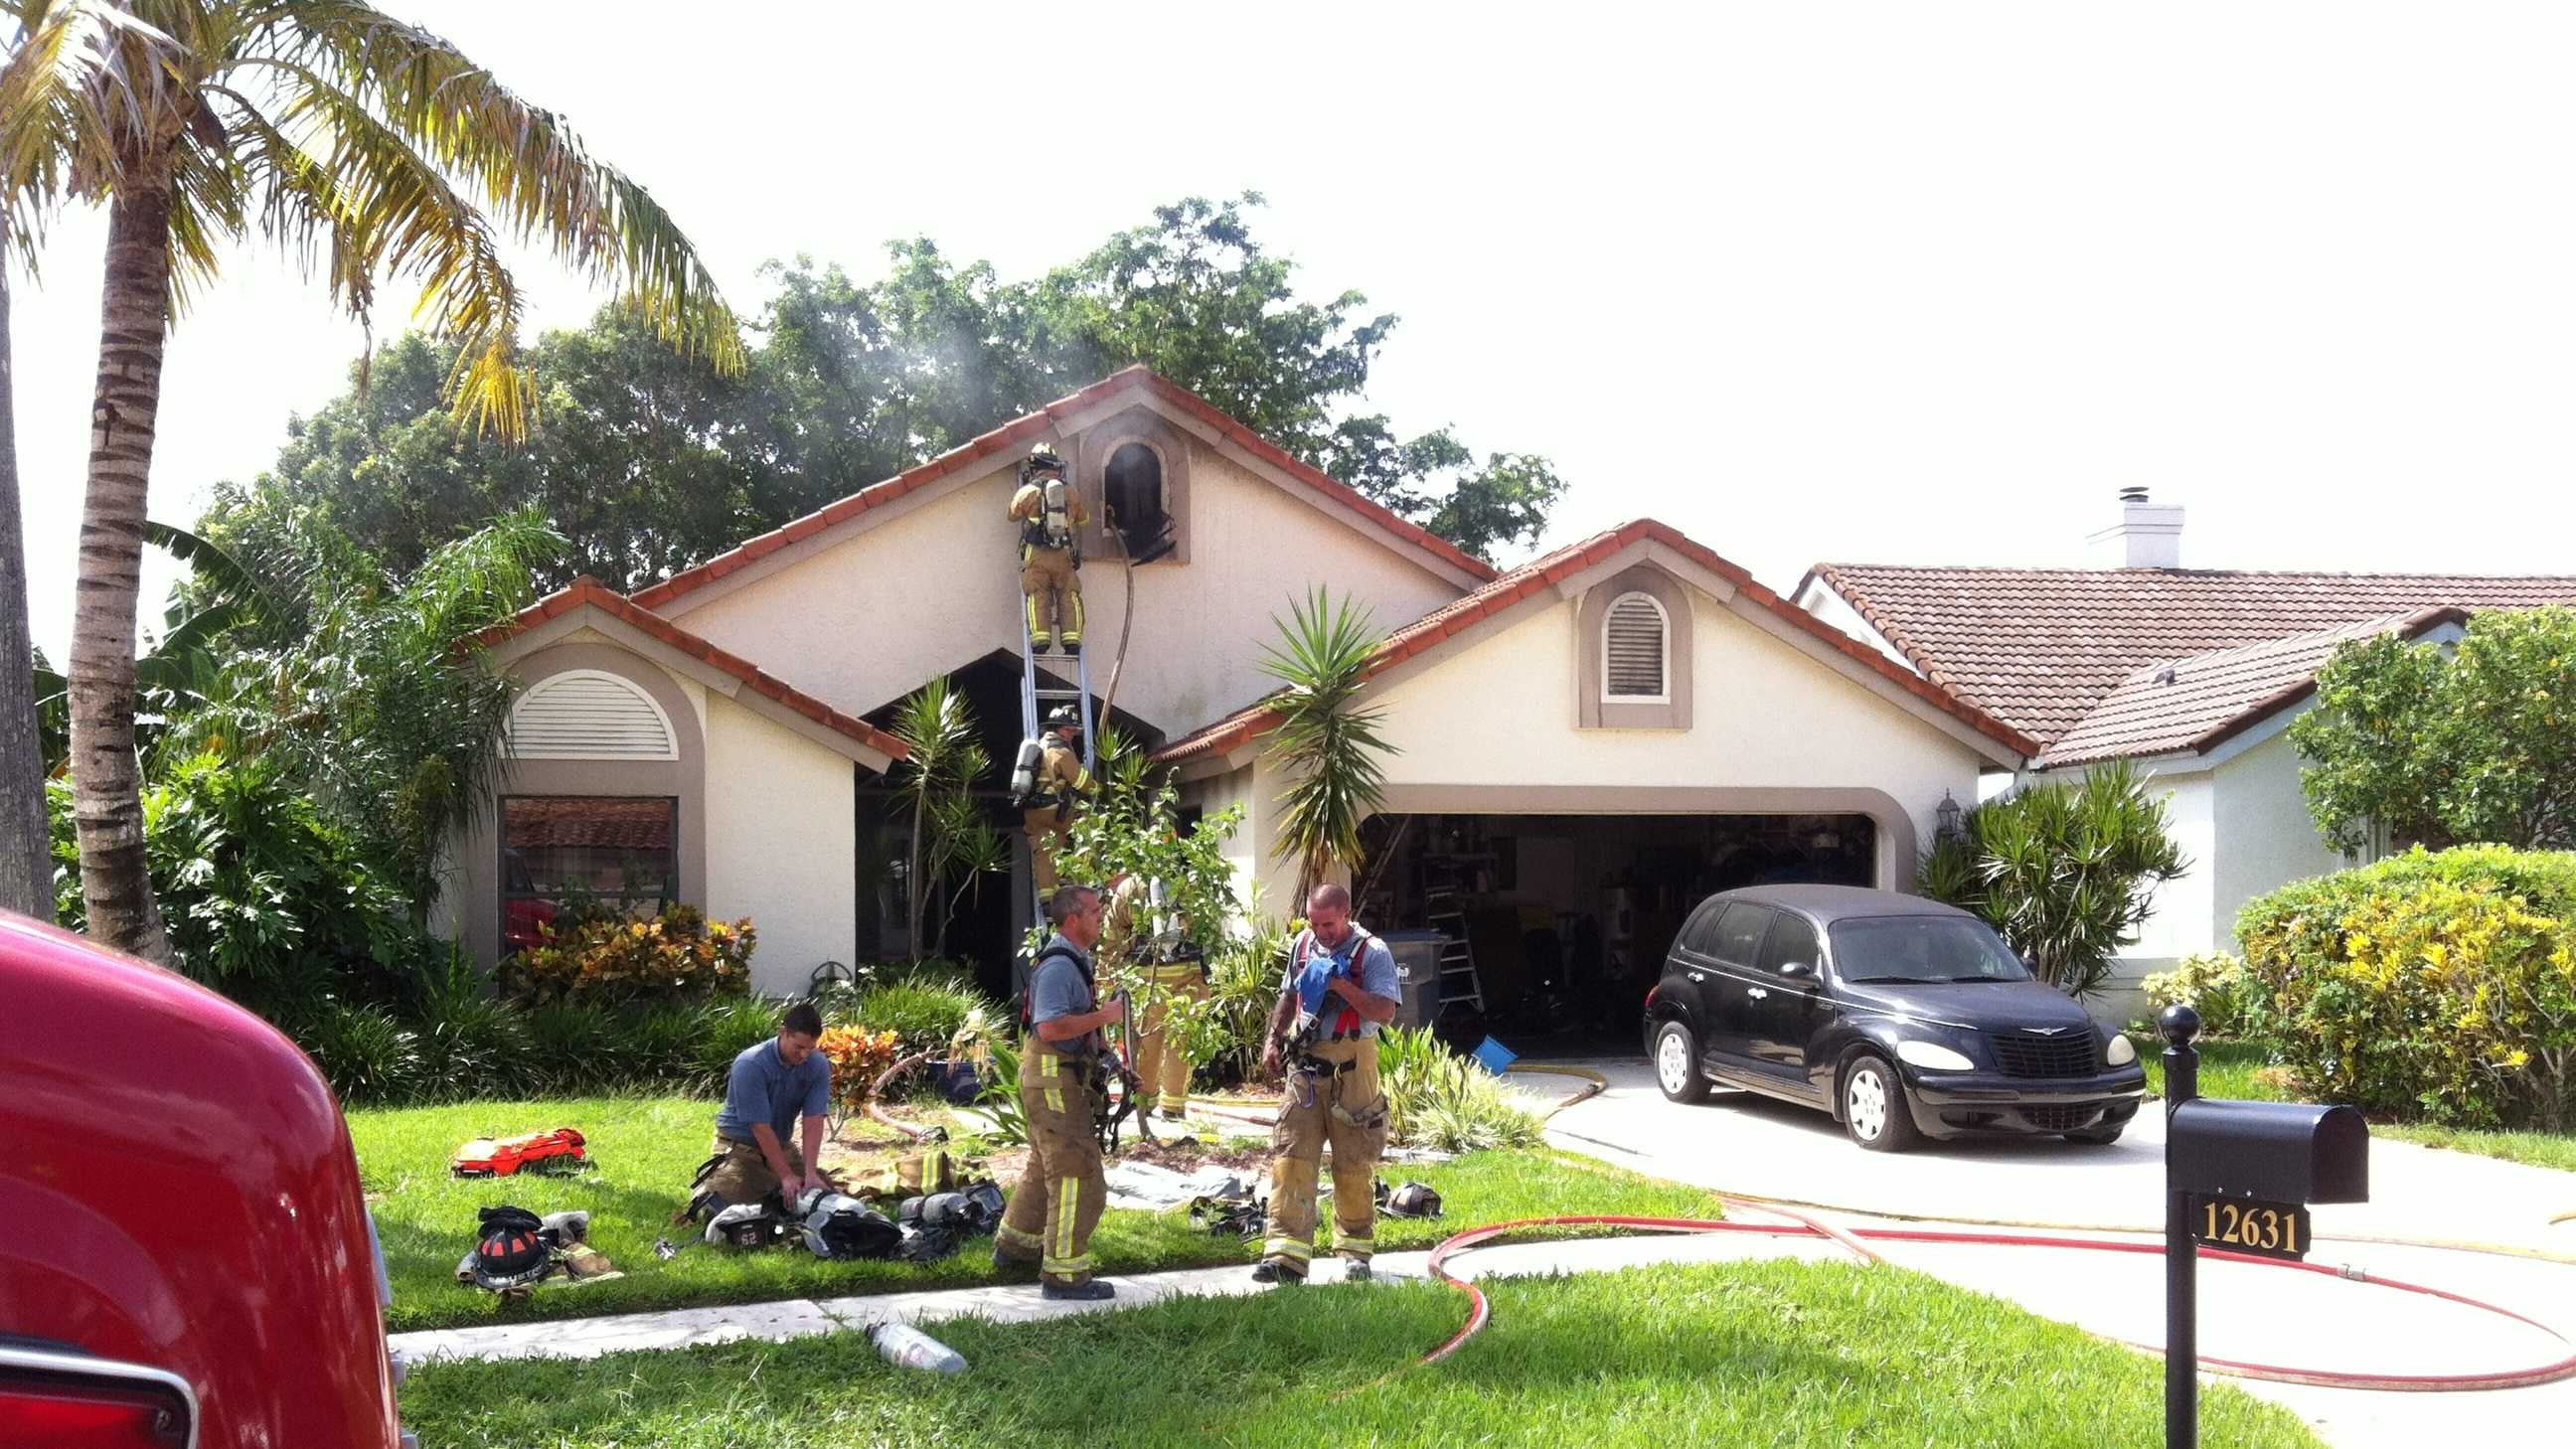 White Coral Drive house fire